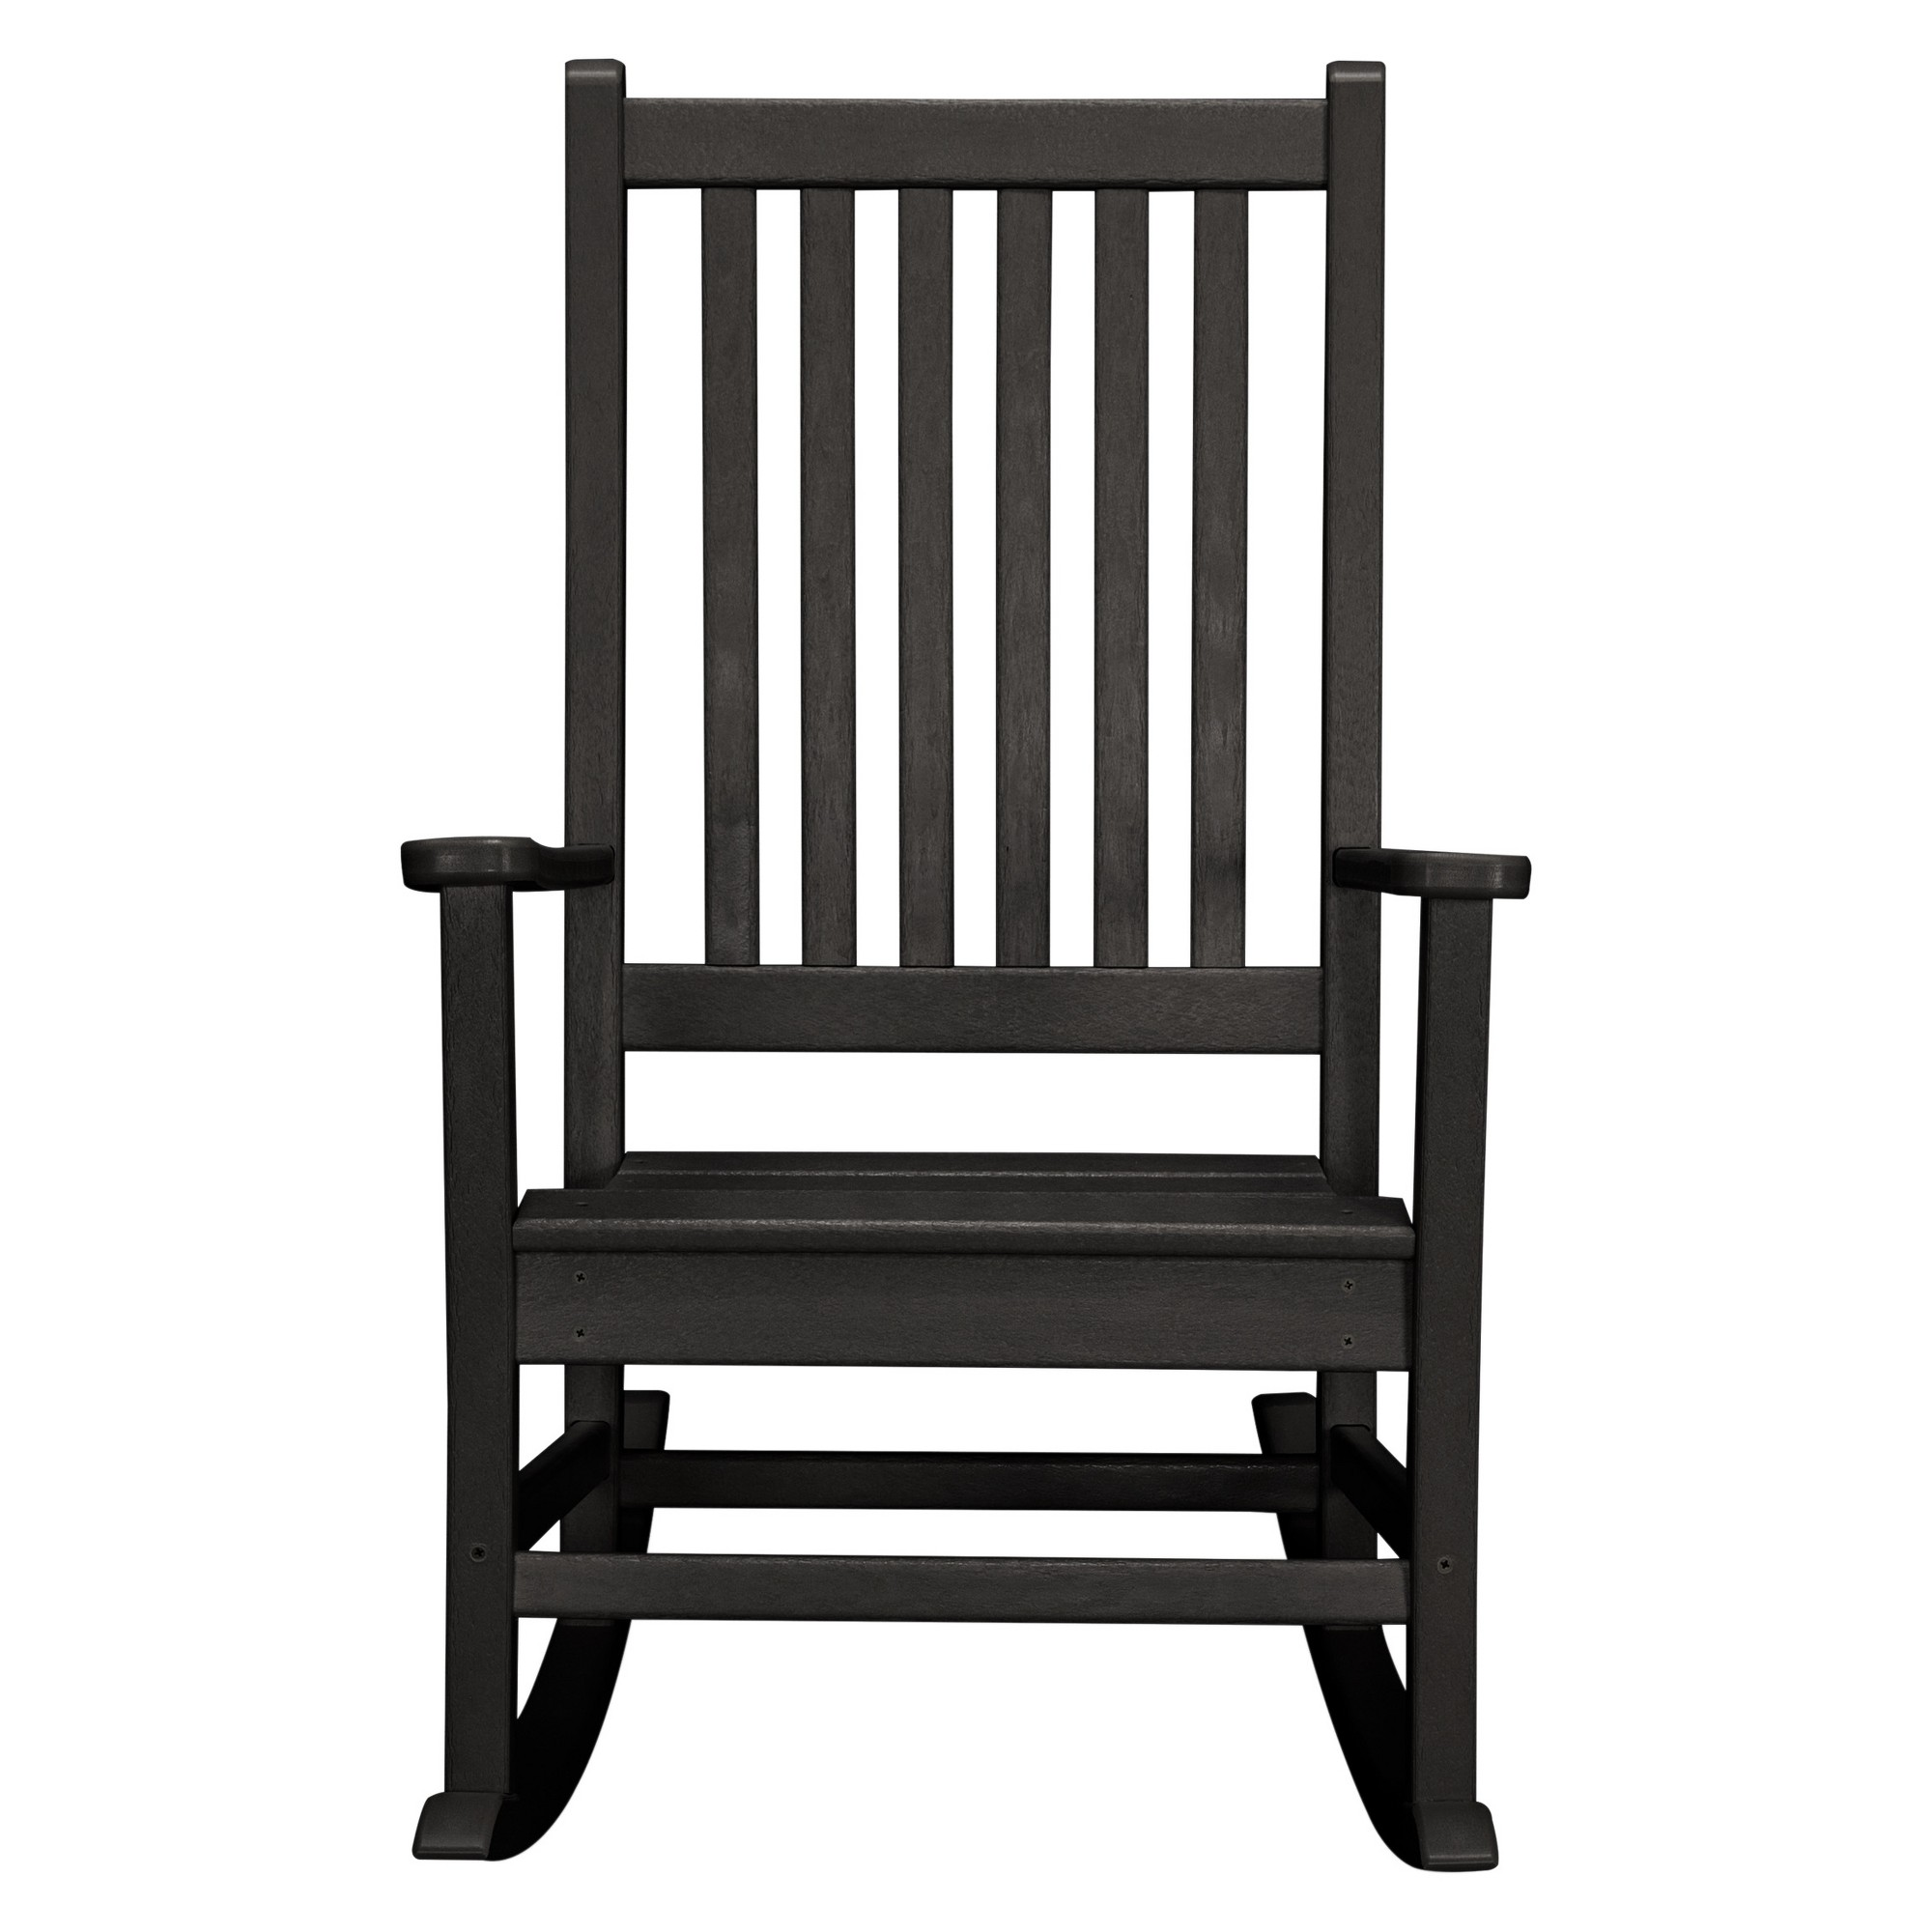 Stupendous Polywood St Croix Rocking Chair Black Products Ibusinesslaw Wood Chair Design Ideas Ibusinesslaworg